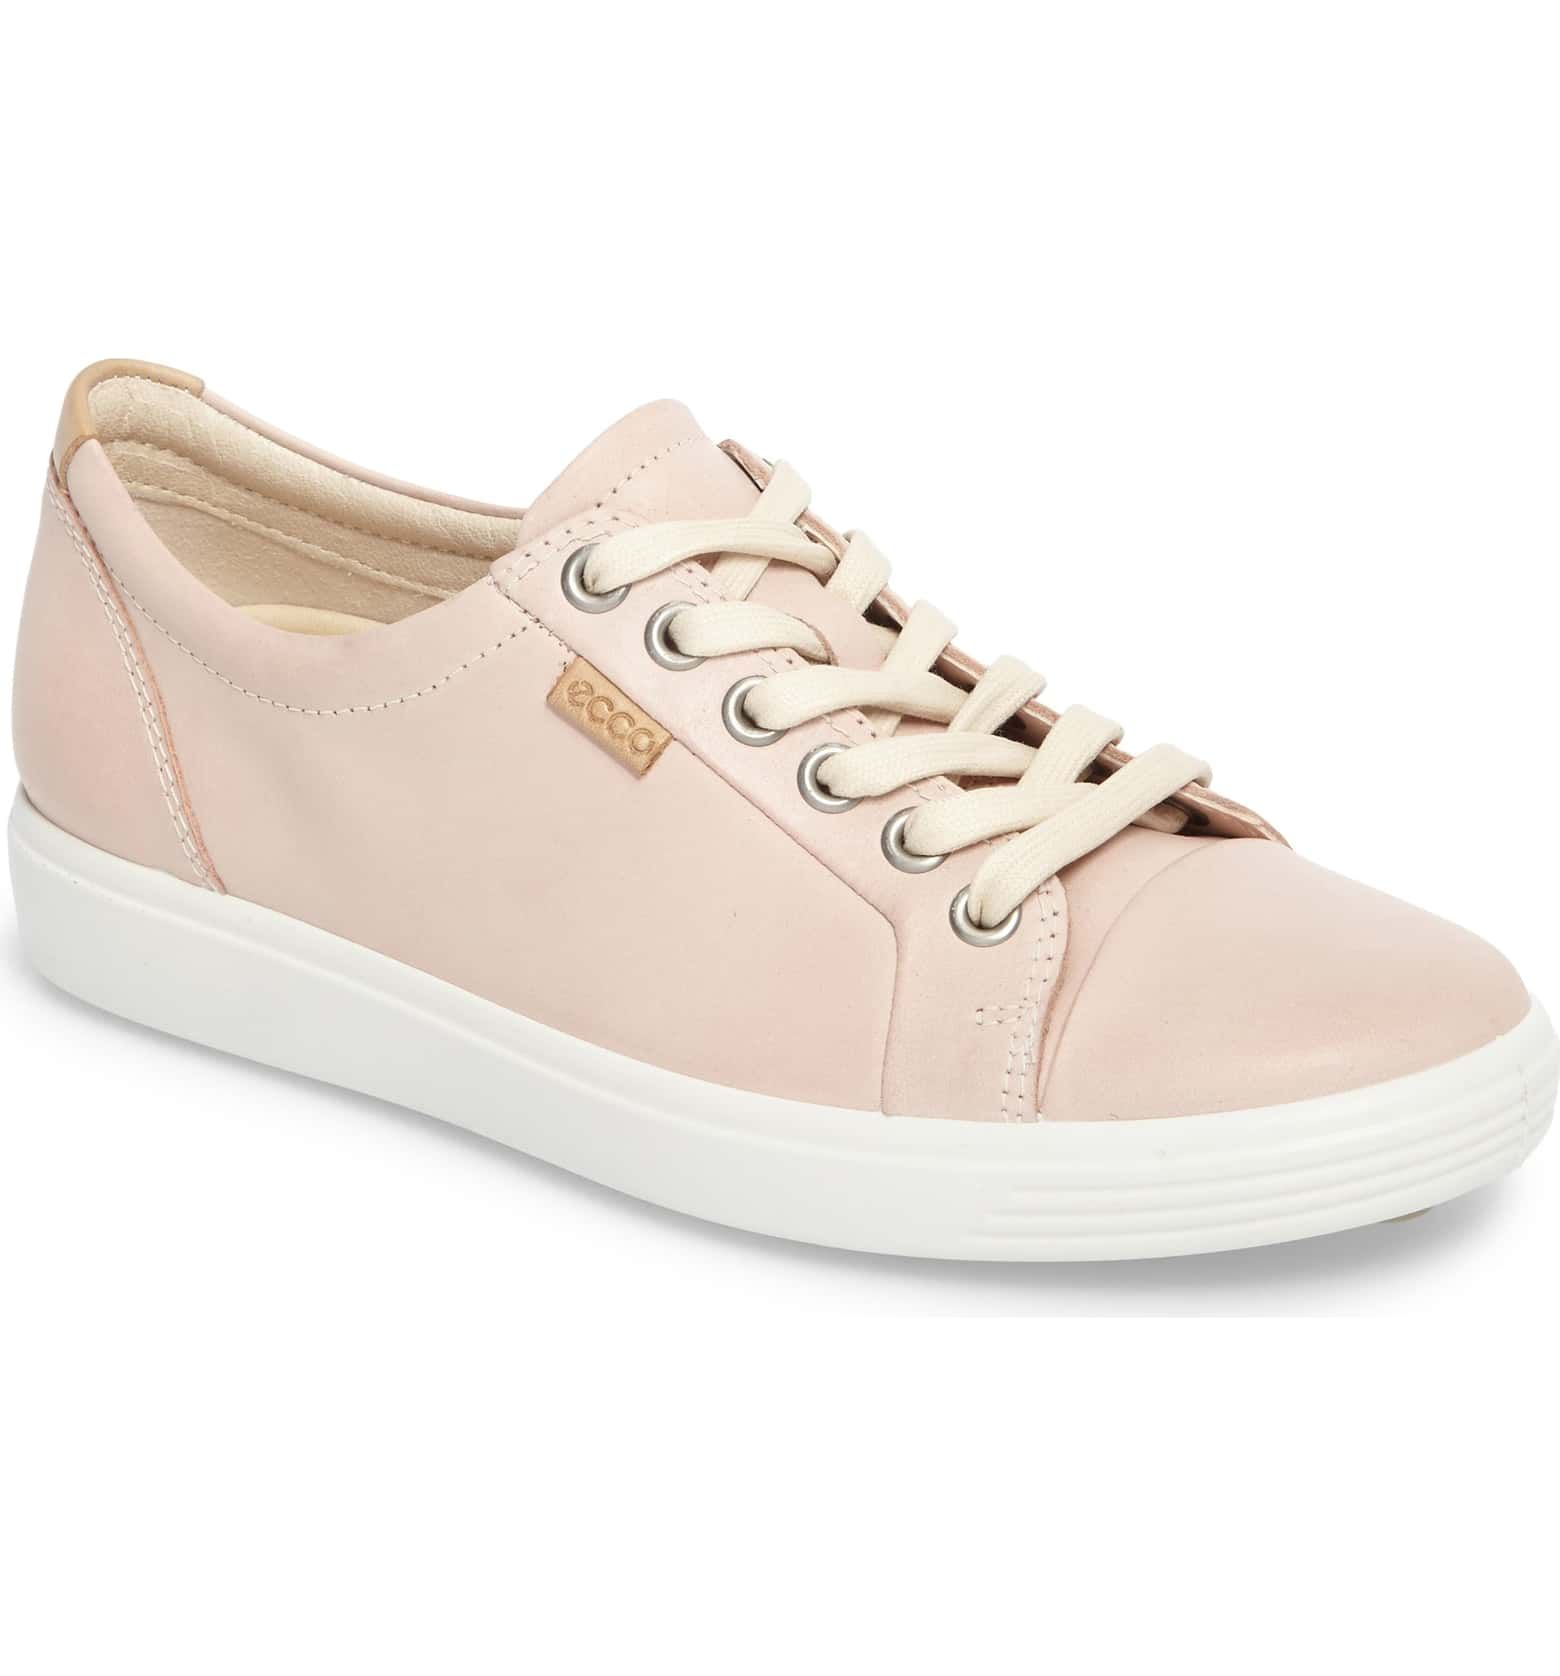 Soft 7 Sneaker Main Color Rose Dust Leather Ecco Shoes Women Womens Sneakers Comfortable Walking Shoes